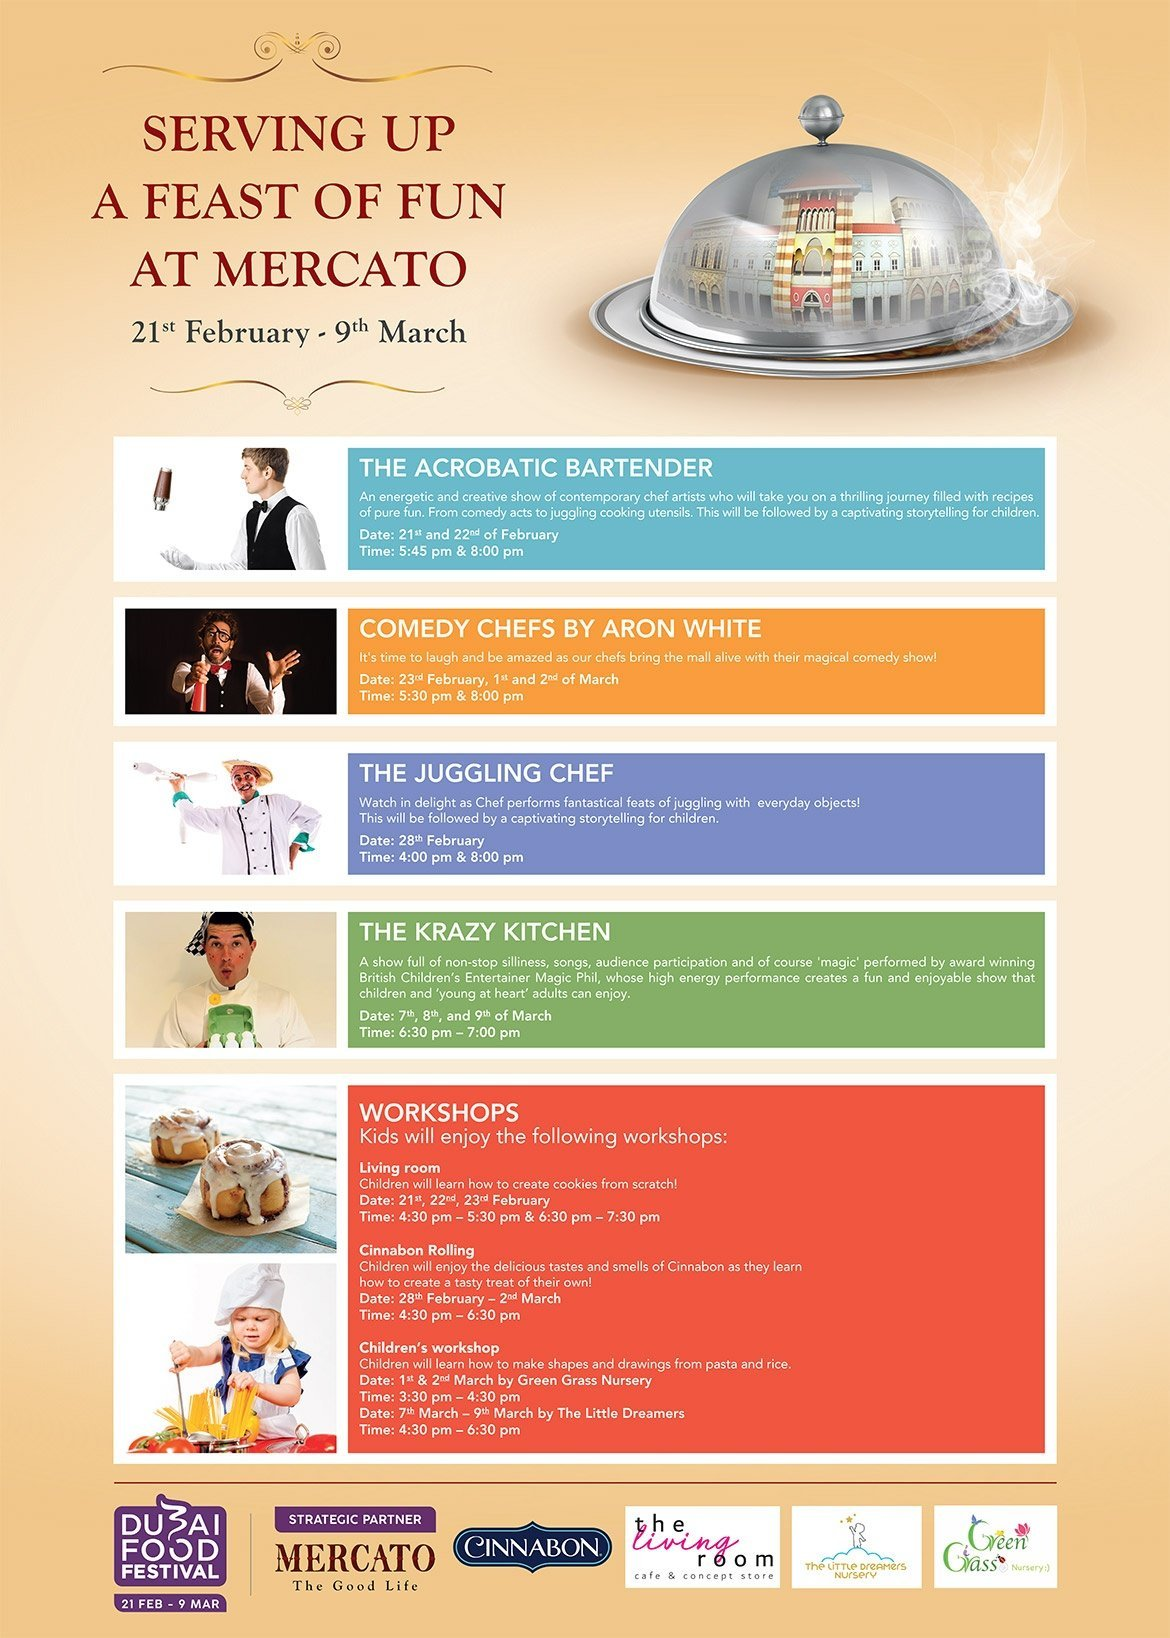 Dubai Food Festival | Mercato Shopping Mall